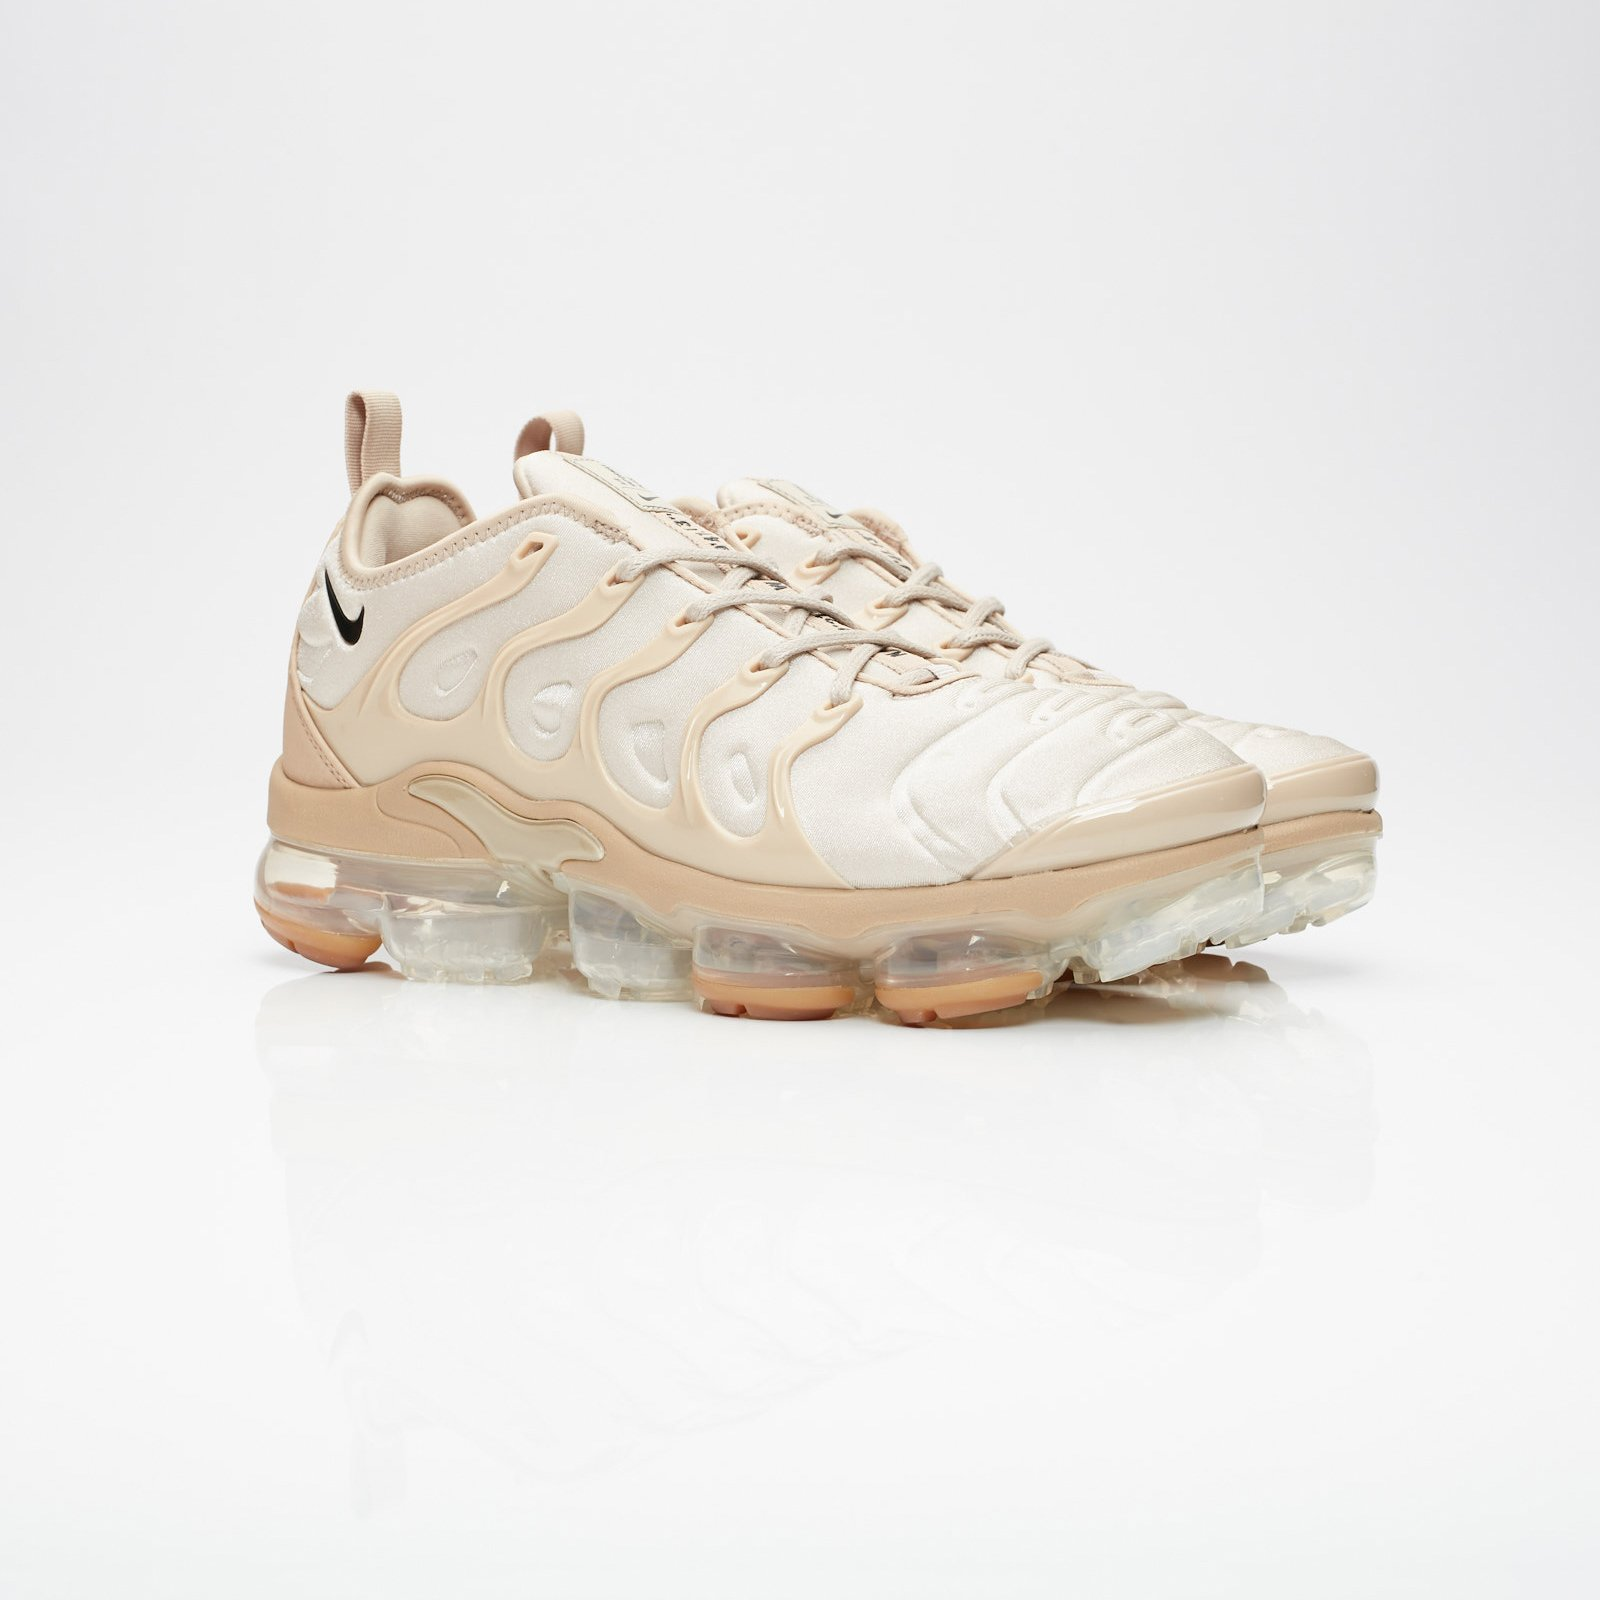 newest d732c 04bf6 Nike Air Vapormax Plus - At5681-200 - Sneakersnstuff ...